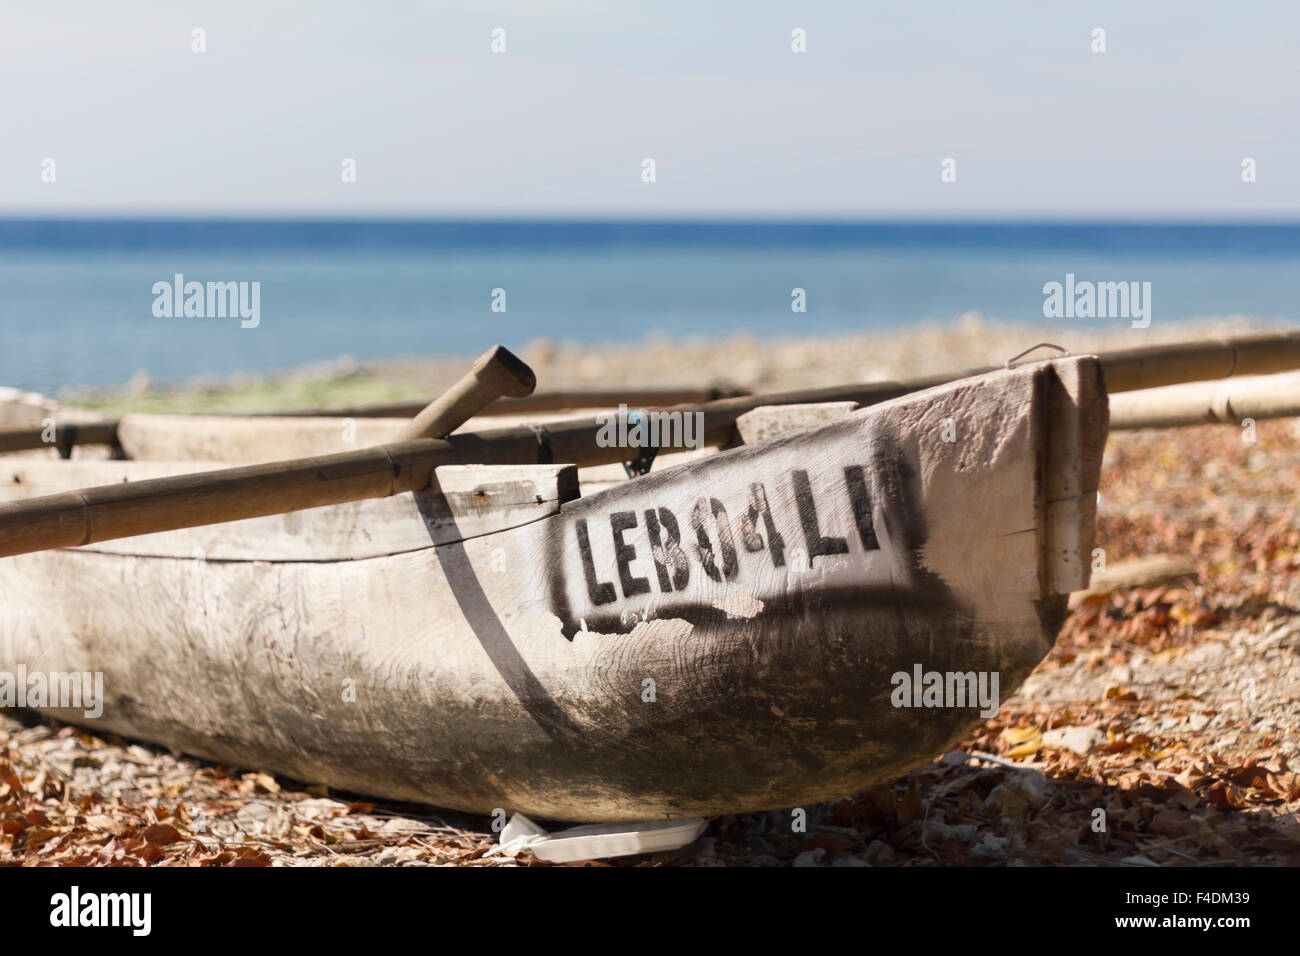 Canoe at a tropical beach in East Timor - Stock Image